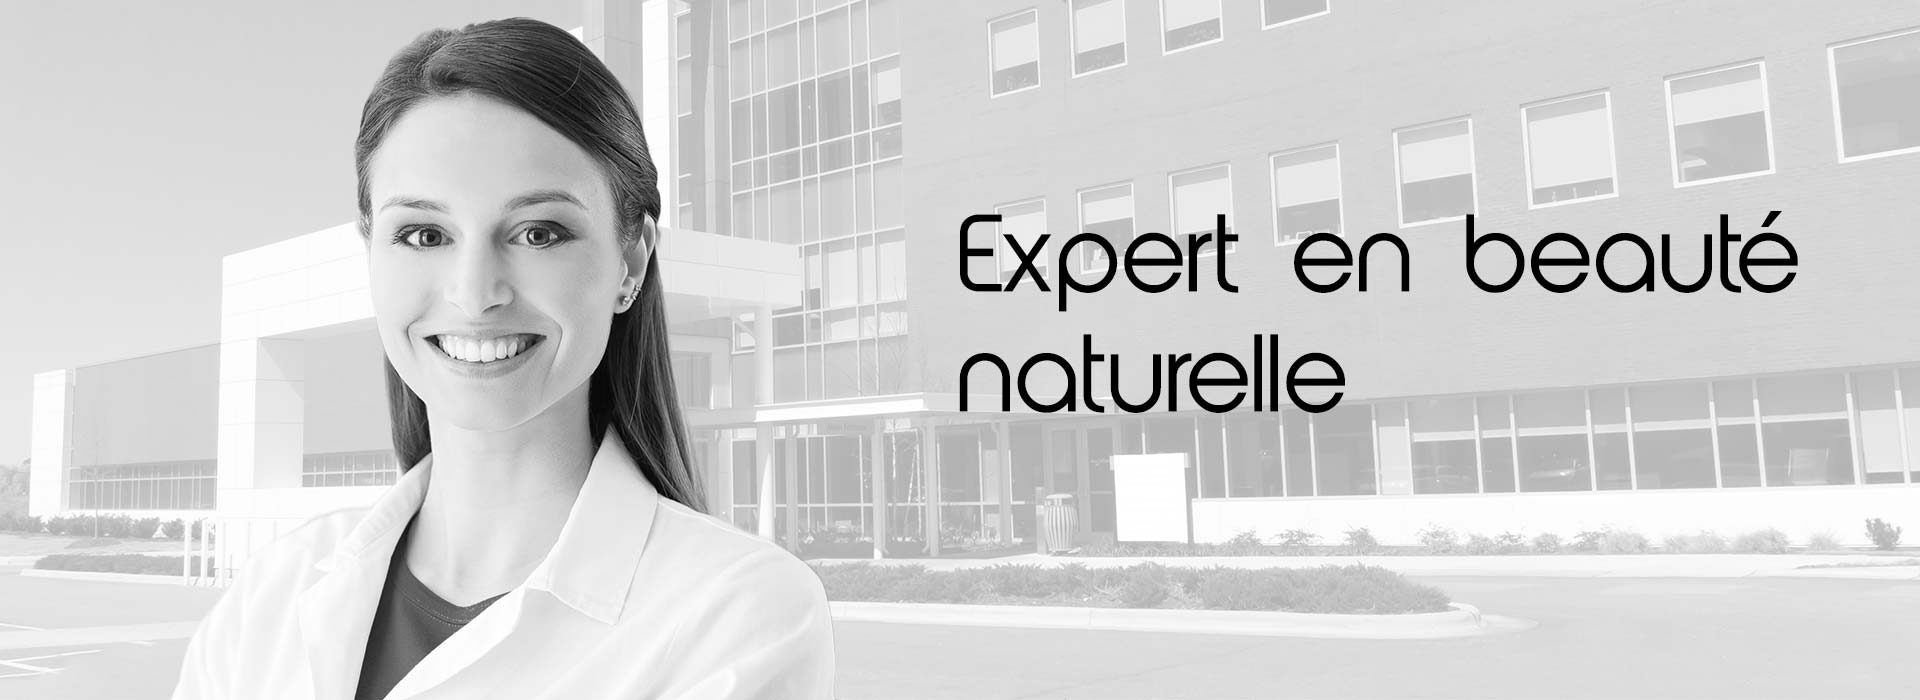 clinique-peause-soin-medico-esthetique-clinique-header